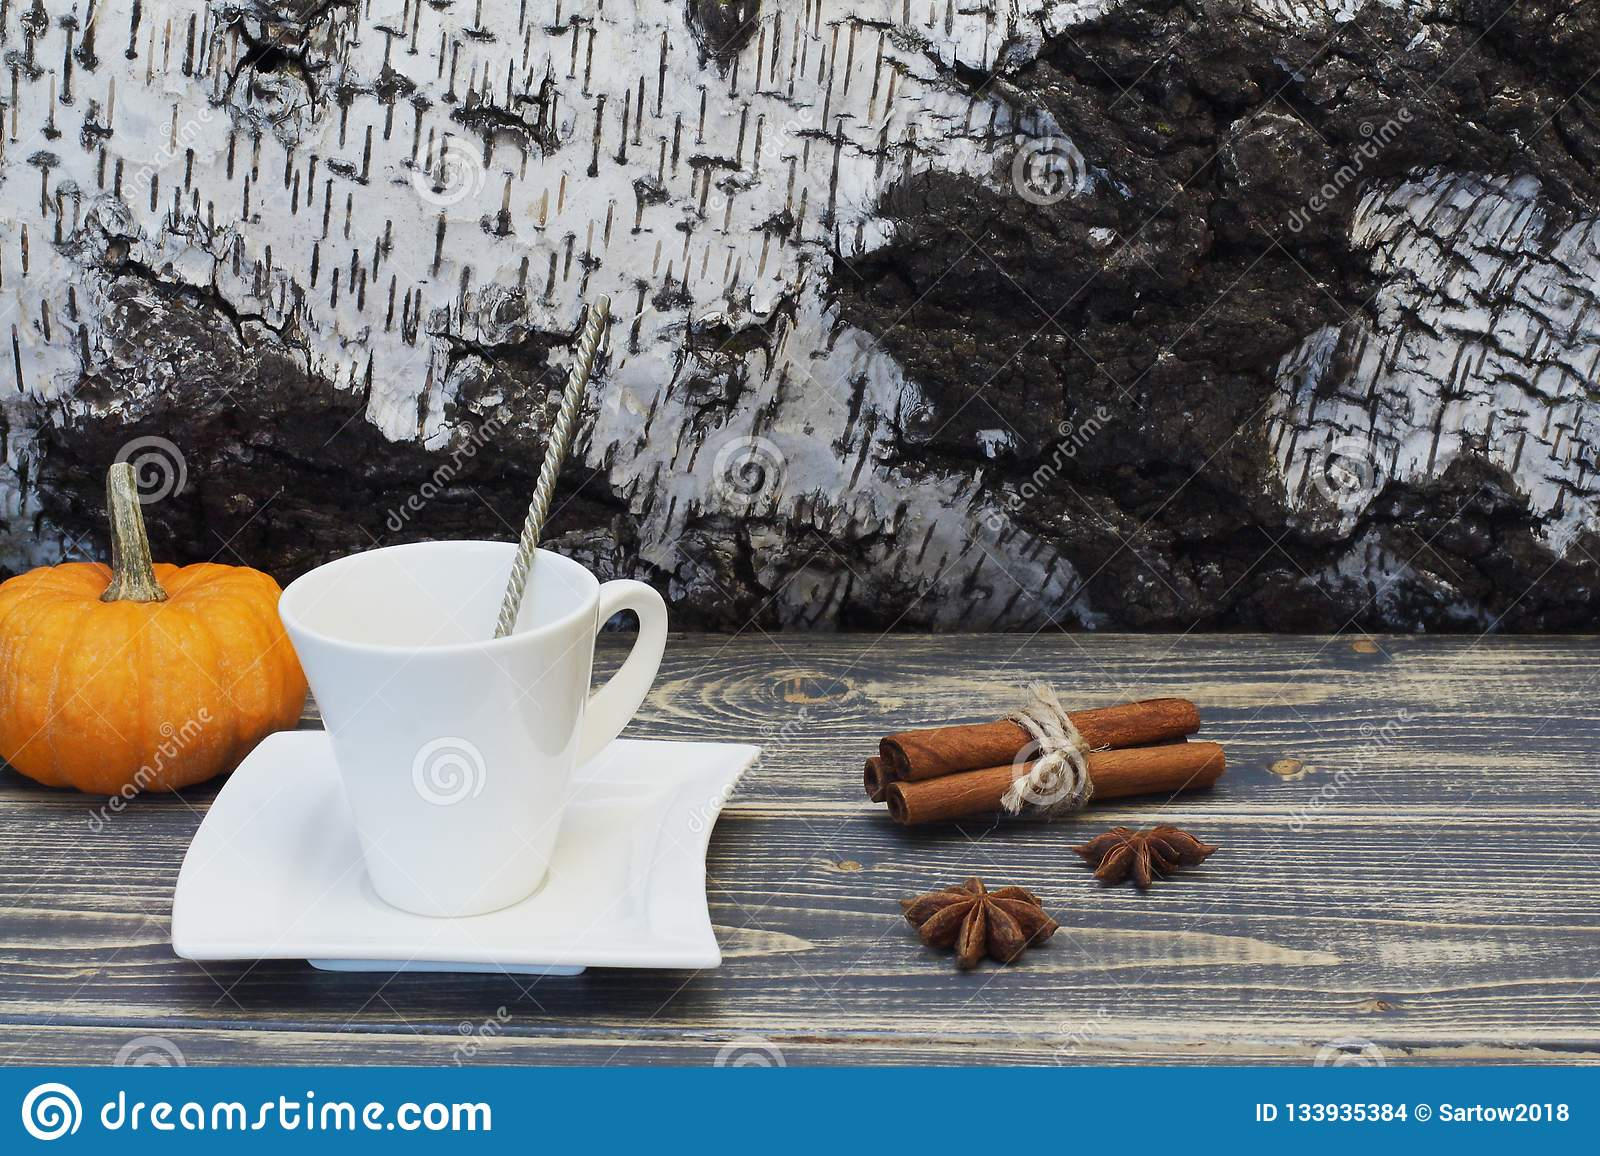 Exclusive white porcelain coffee pair with metal spoon, cinnamon, star anise and bright orange decorative pumpkin against the